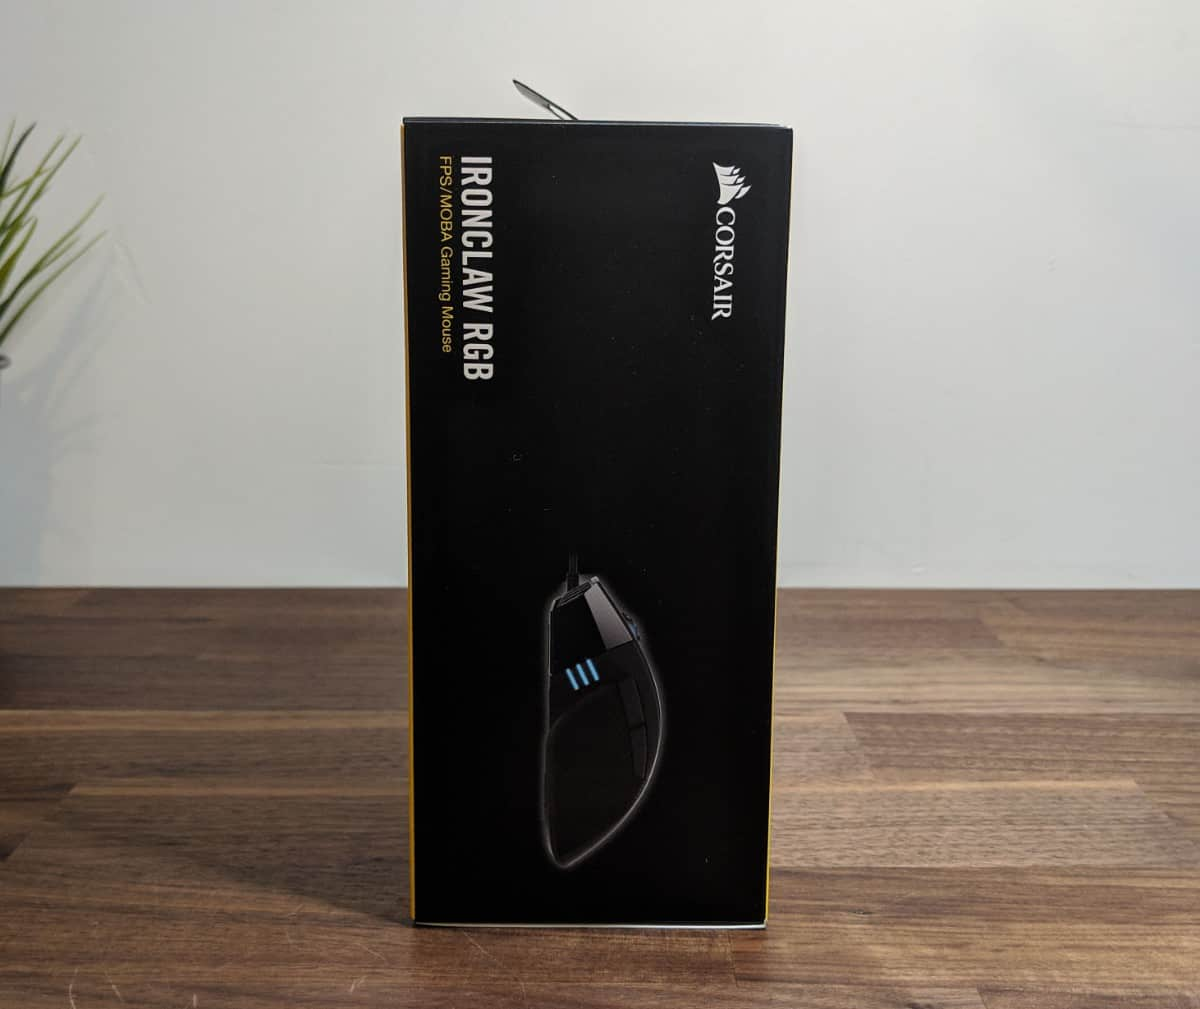 Corsair-Ironclaw-Photos-15 Corsair Ironclaw RGB Review